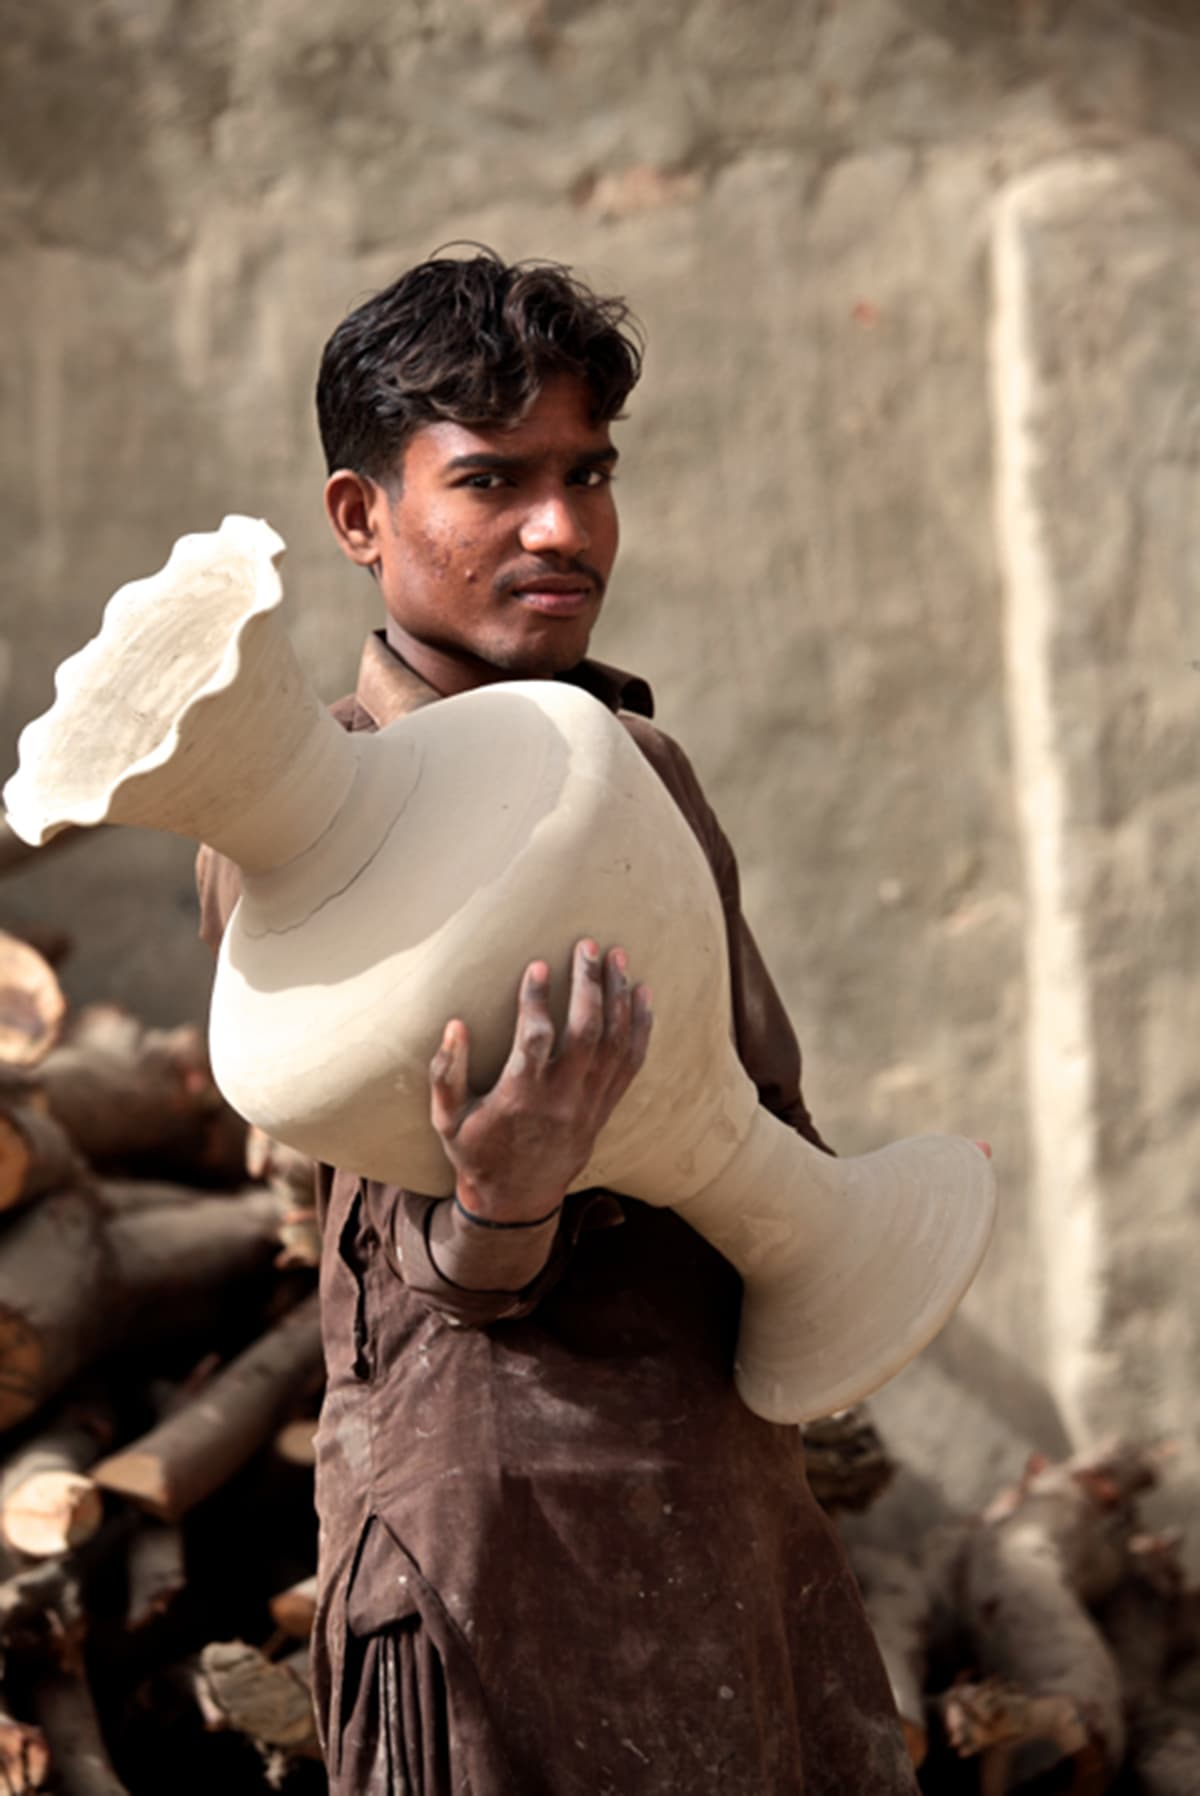 For over a century, generation after generation of 'Kashigars' have been moulding, shaping, painting, and making fire glazed tiles and earthenware.